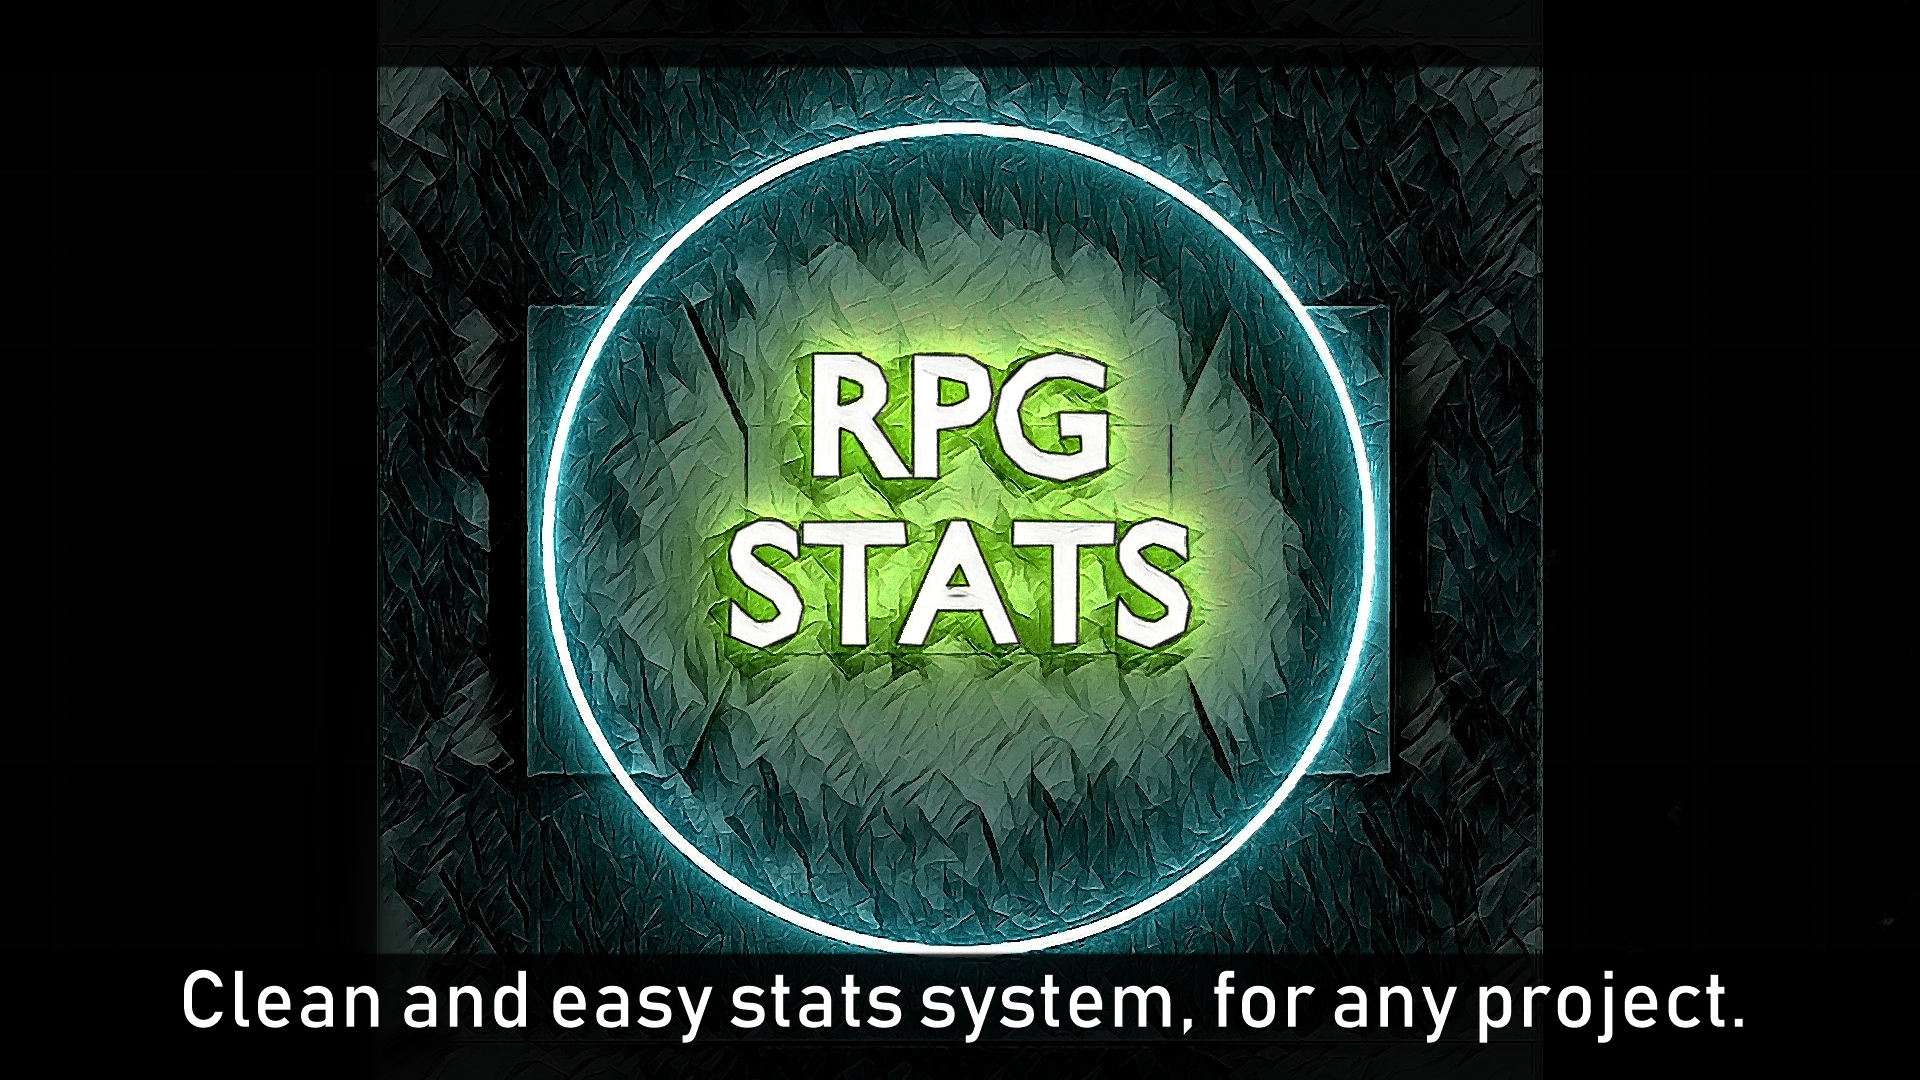 RPG Stats by Dino Zavr in Blueprints - UE4 Marketplace